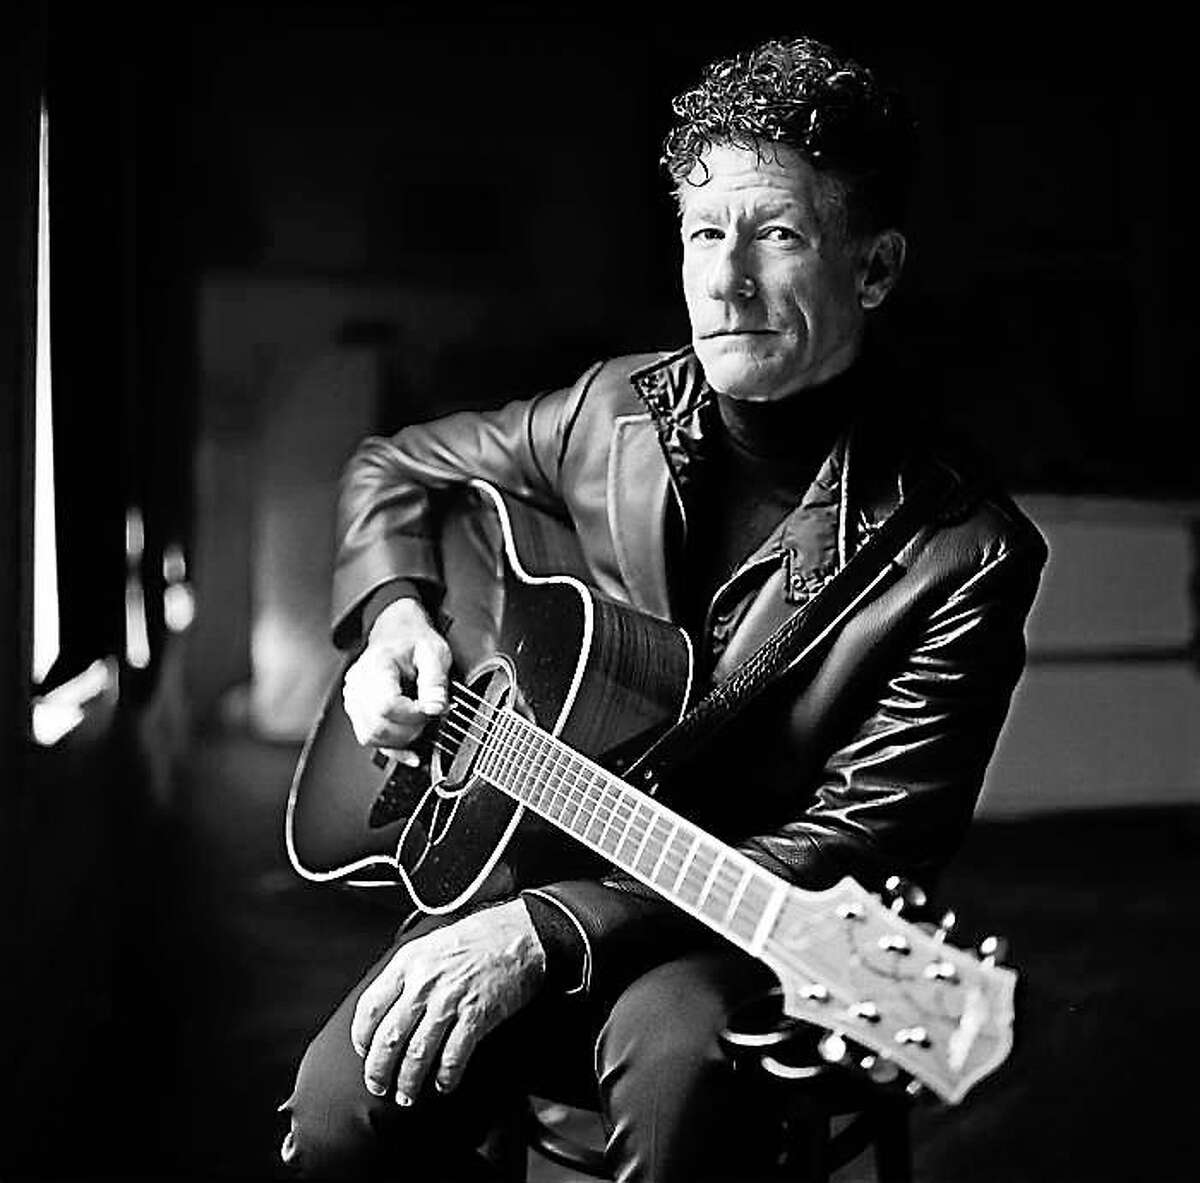 Submitted photo - Lyle Lovett Lyle Lovett and John Hiatt are performing a double bill show at the Klein in Bridgeport on Jan. 30.